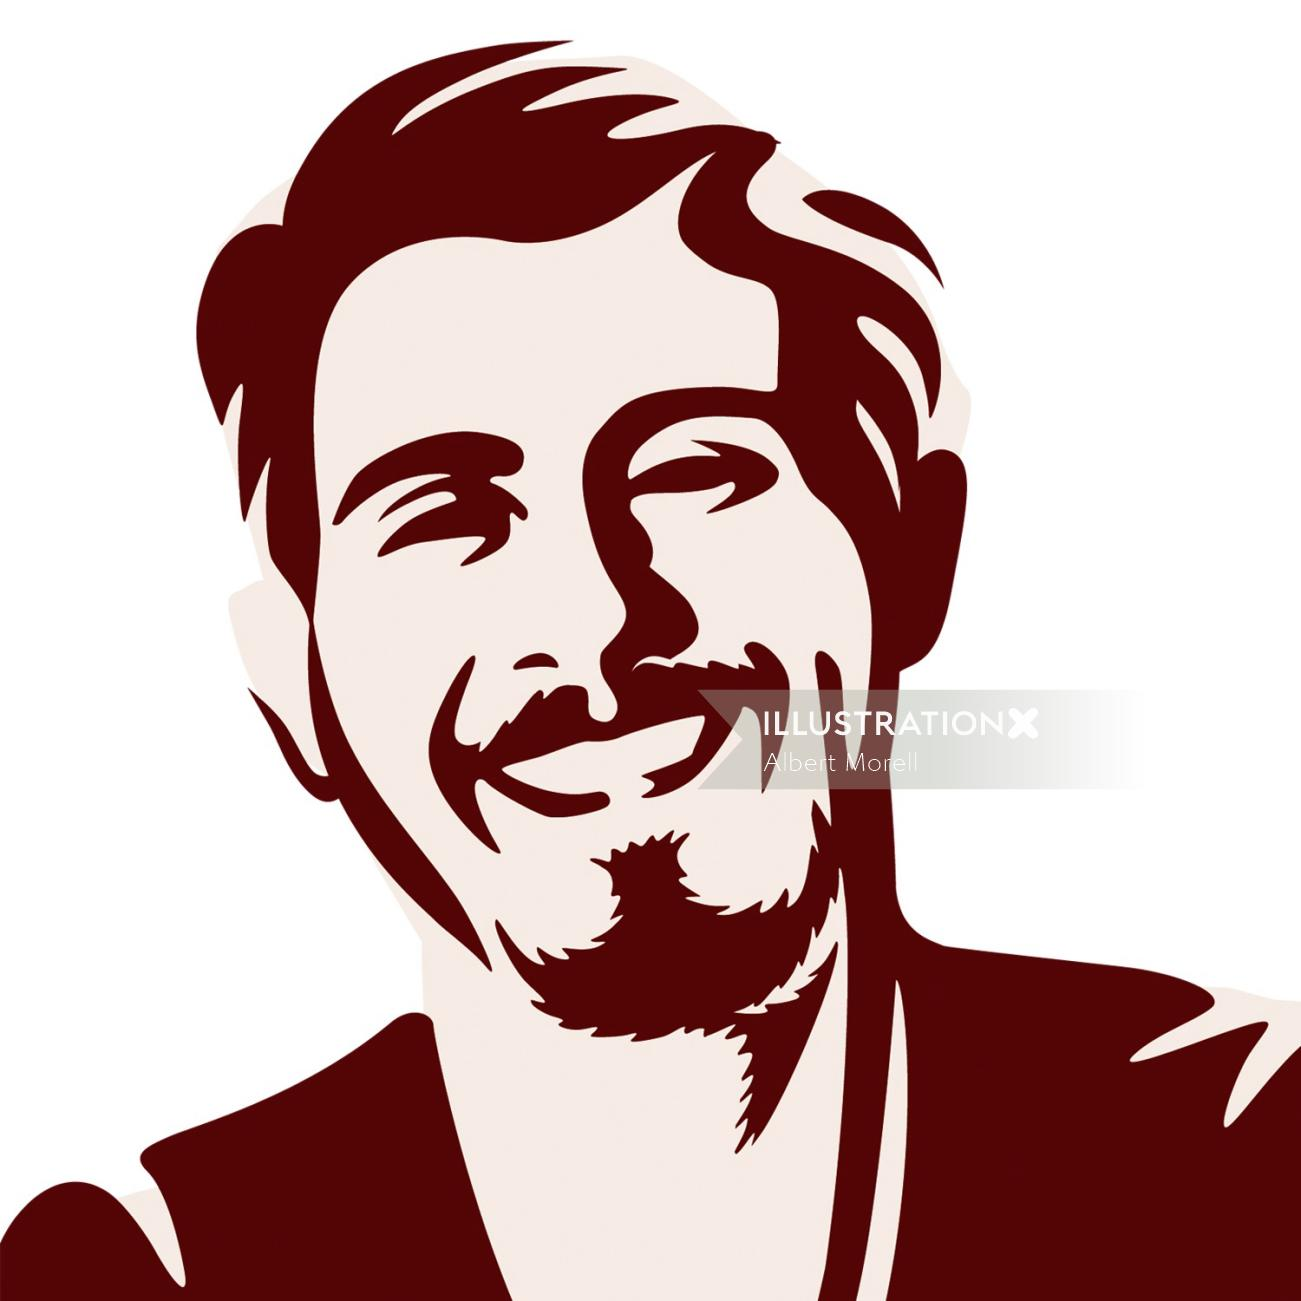 Icon of a smiling man